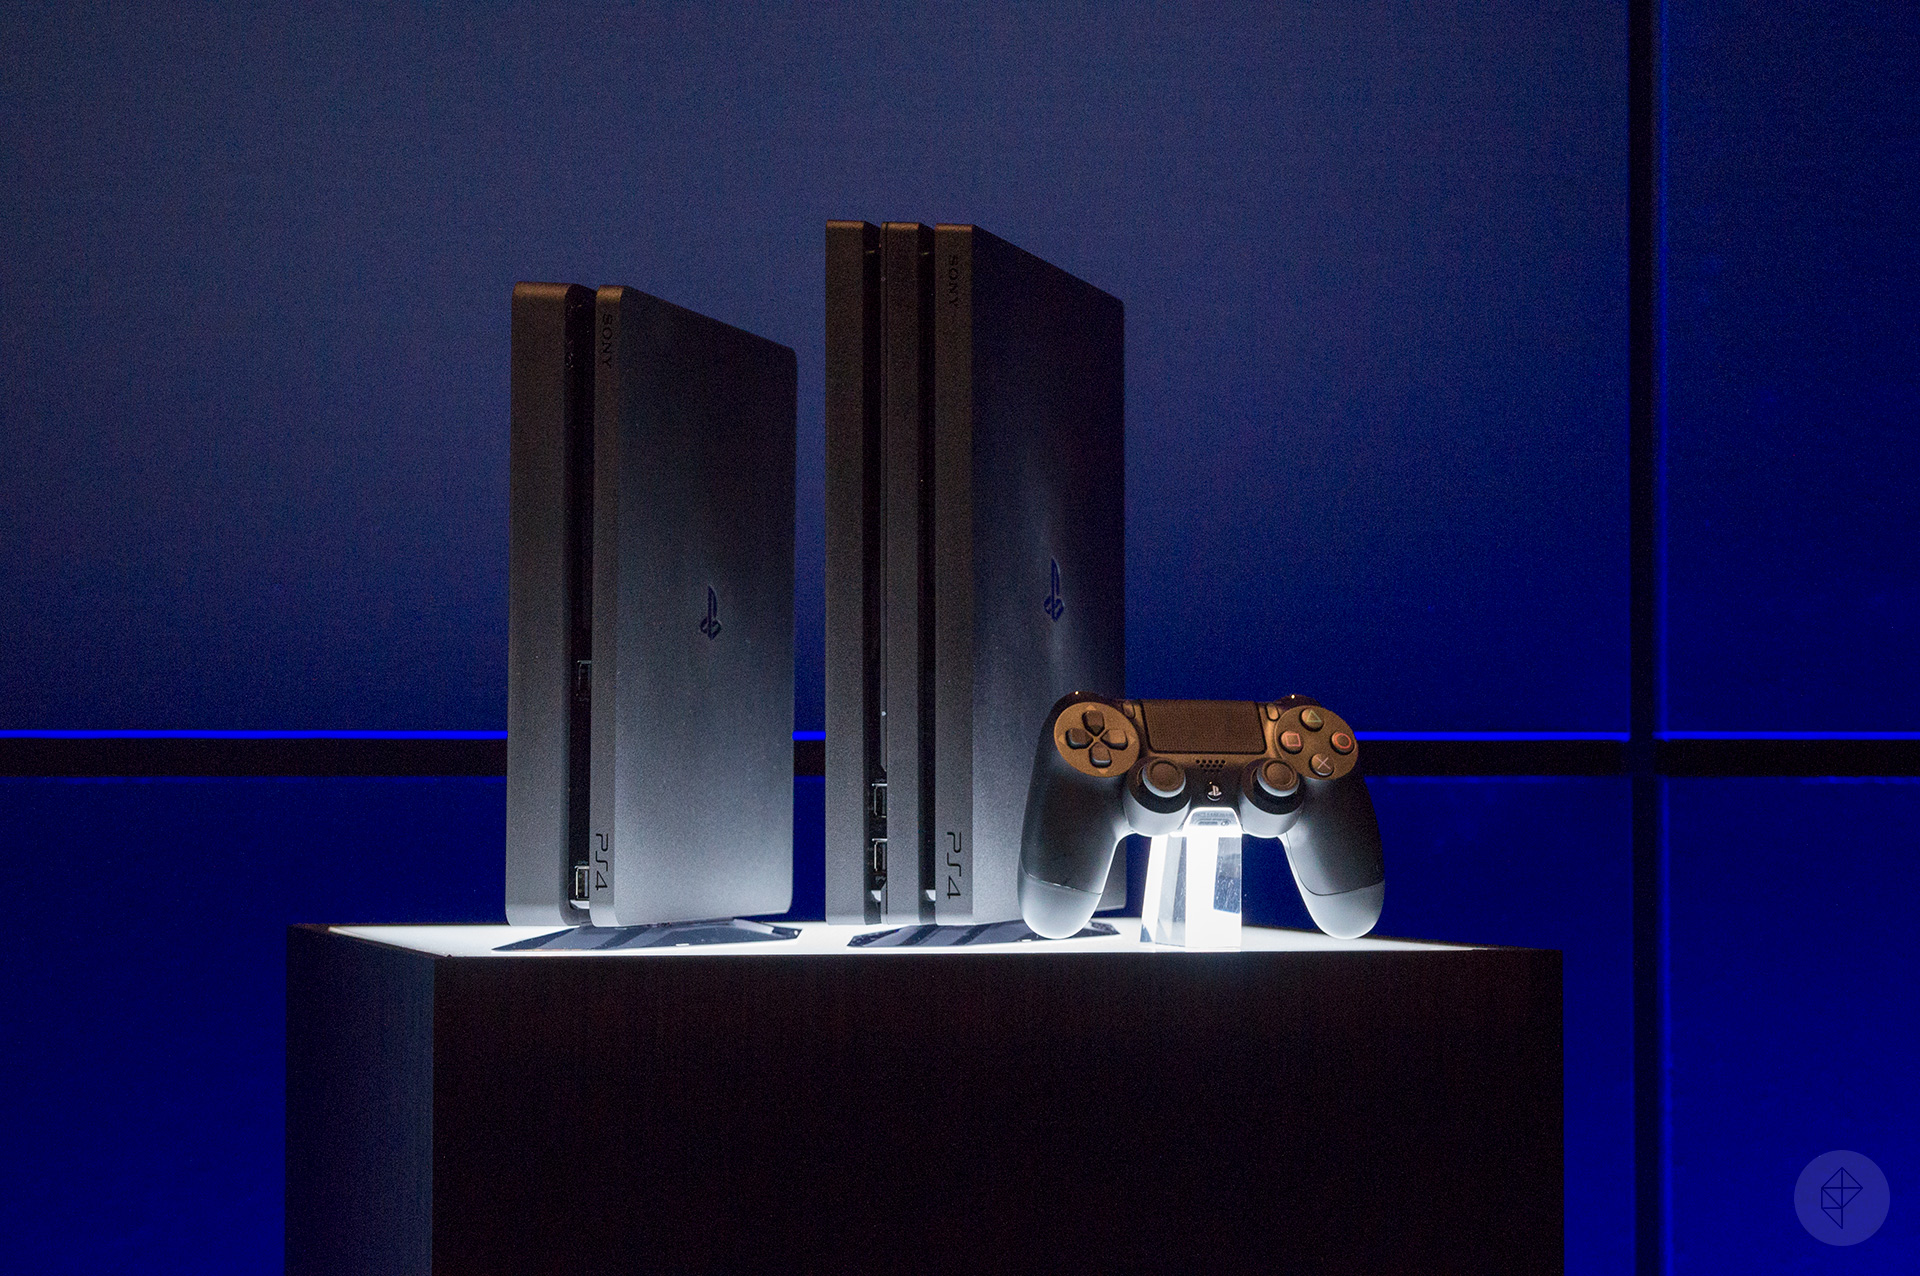 Sony confirms it's working on the next PlayStation console